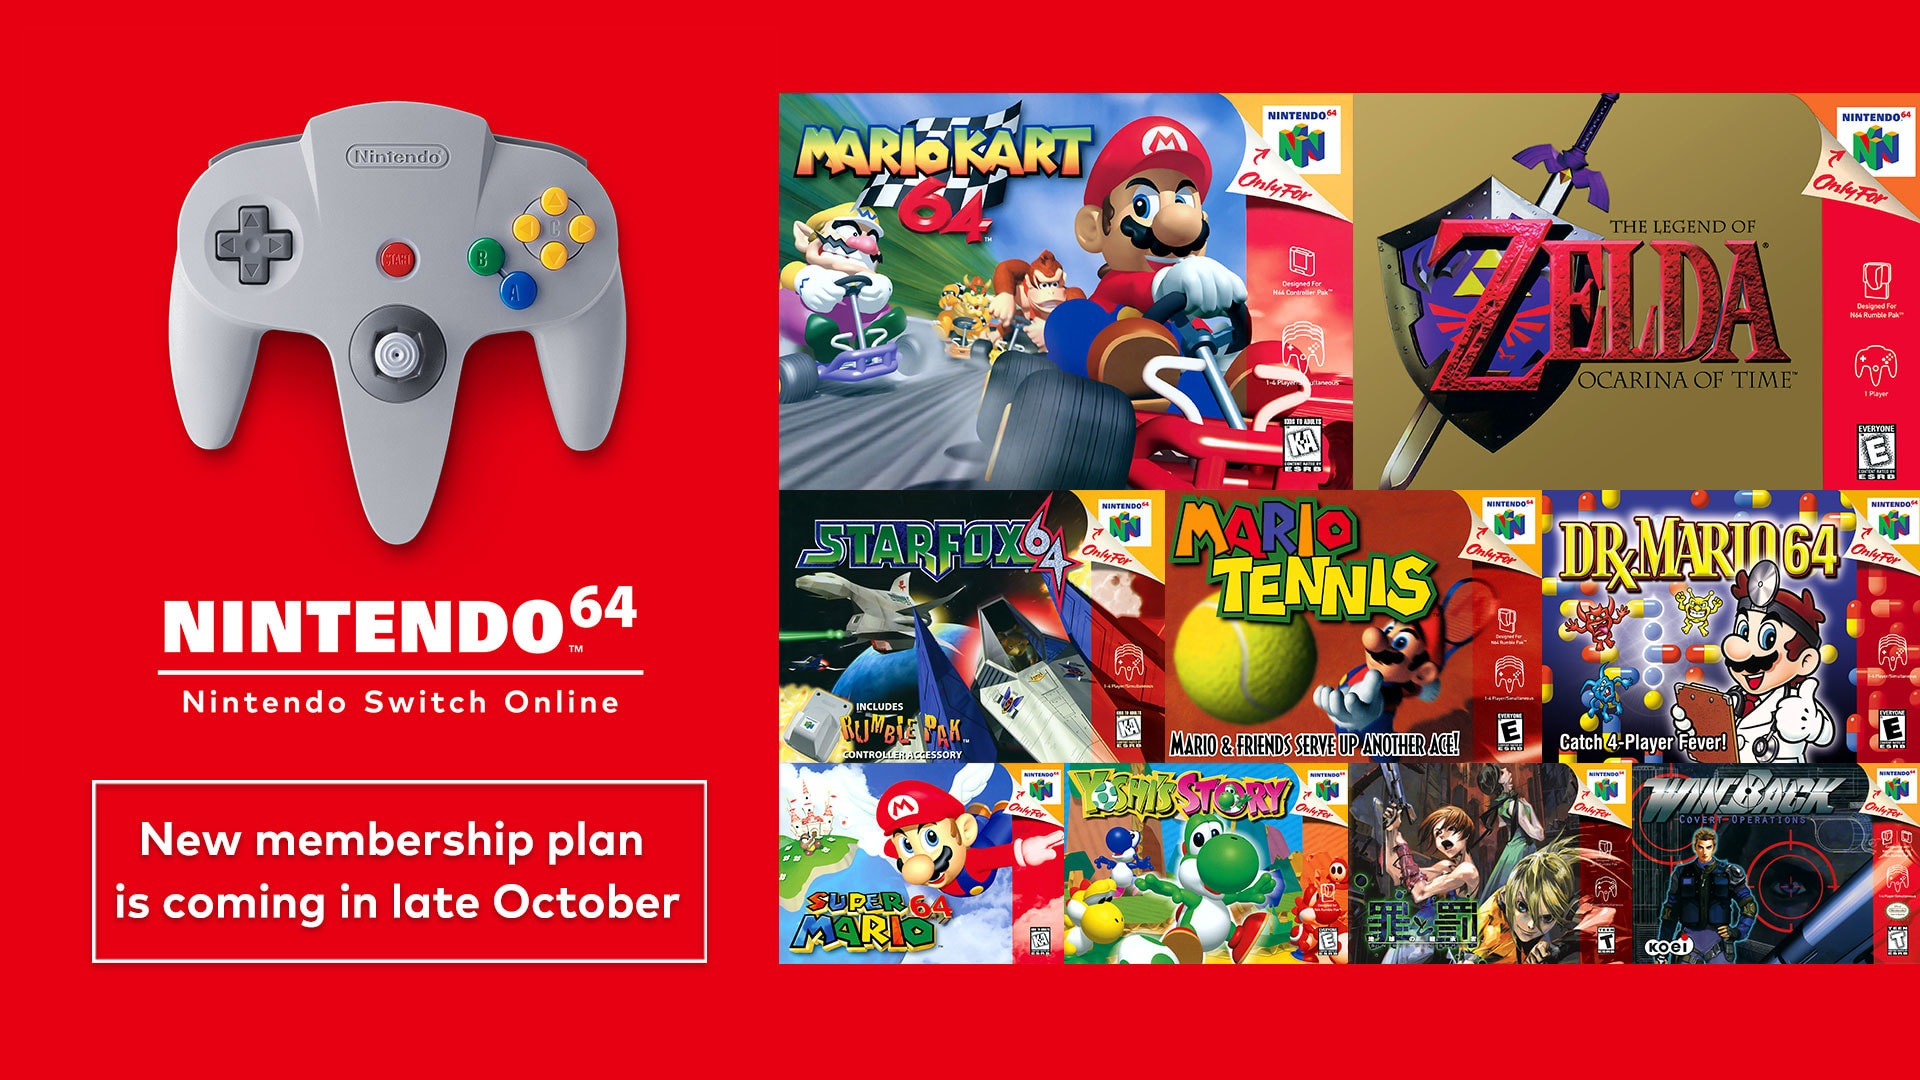 Nintendo 64 games and the classic controller coming to Nintendo Switch!